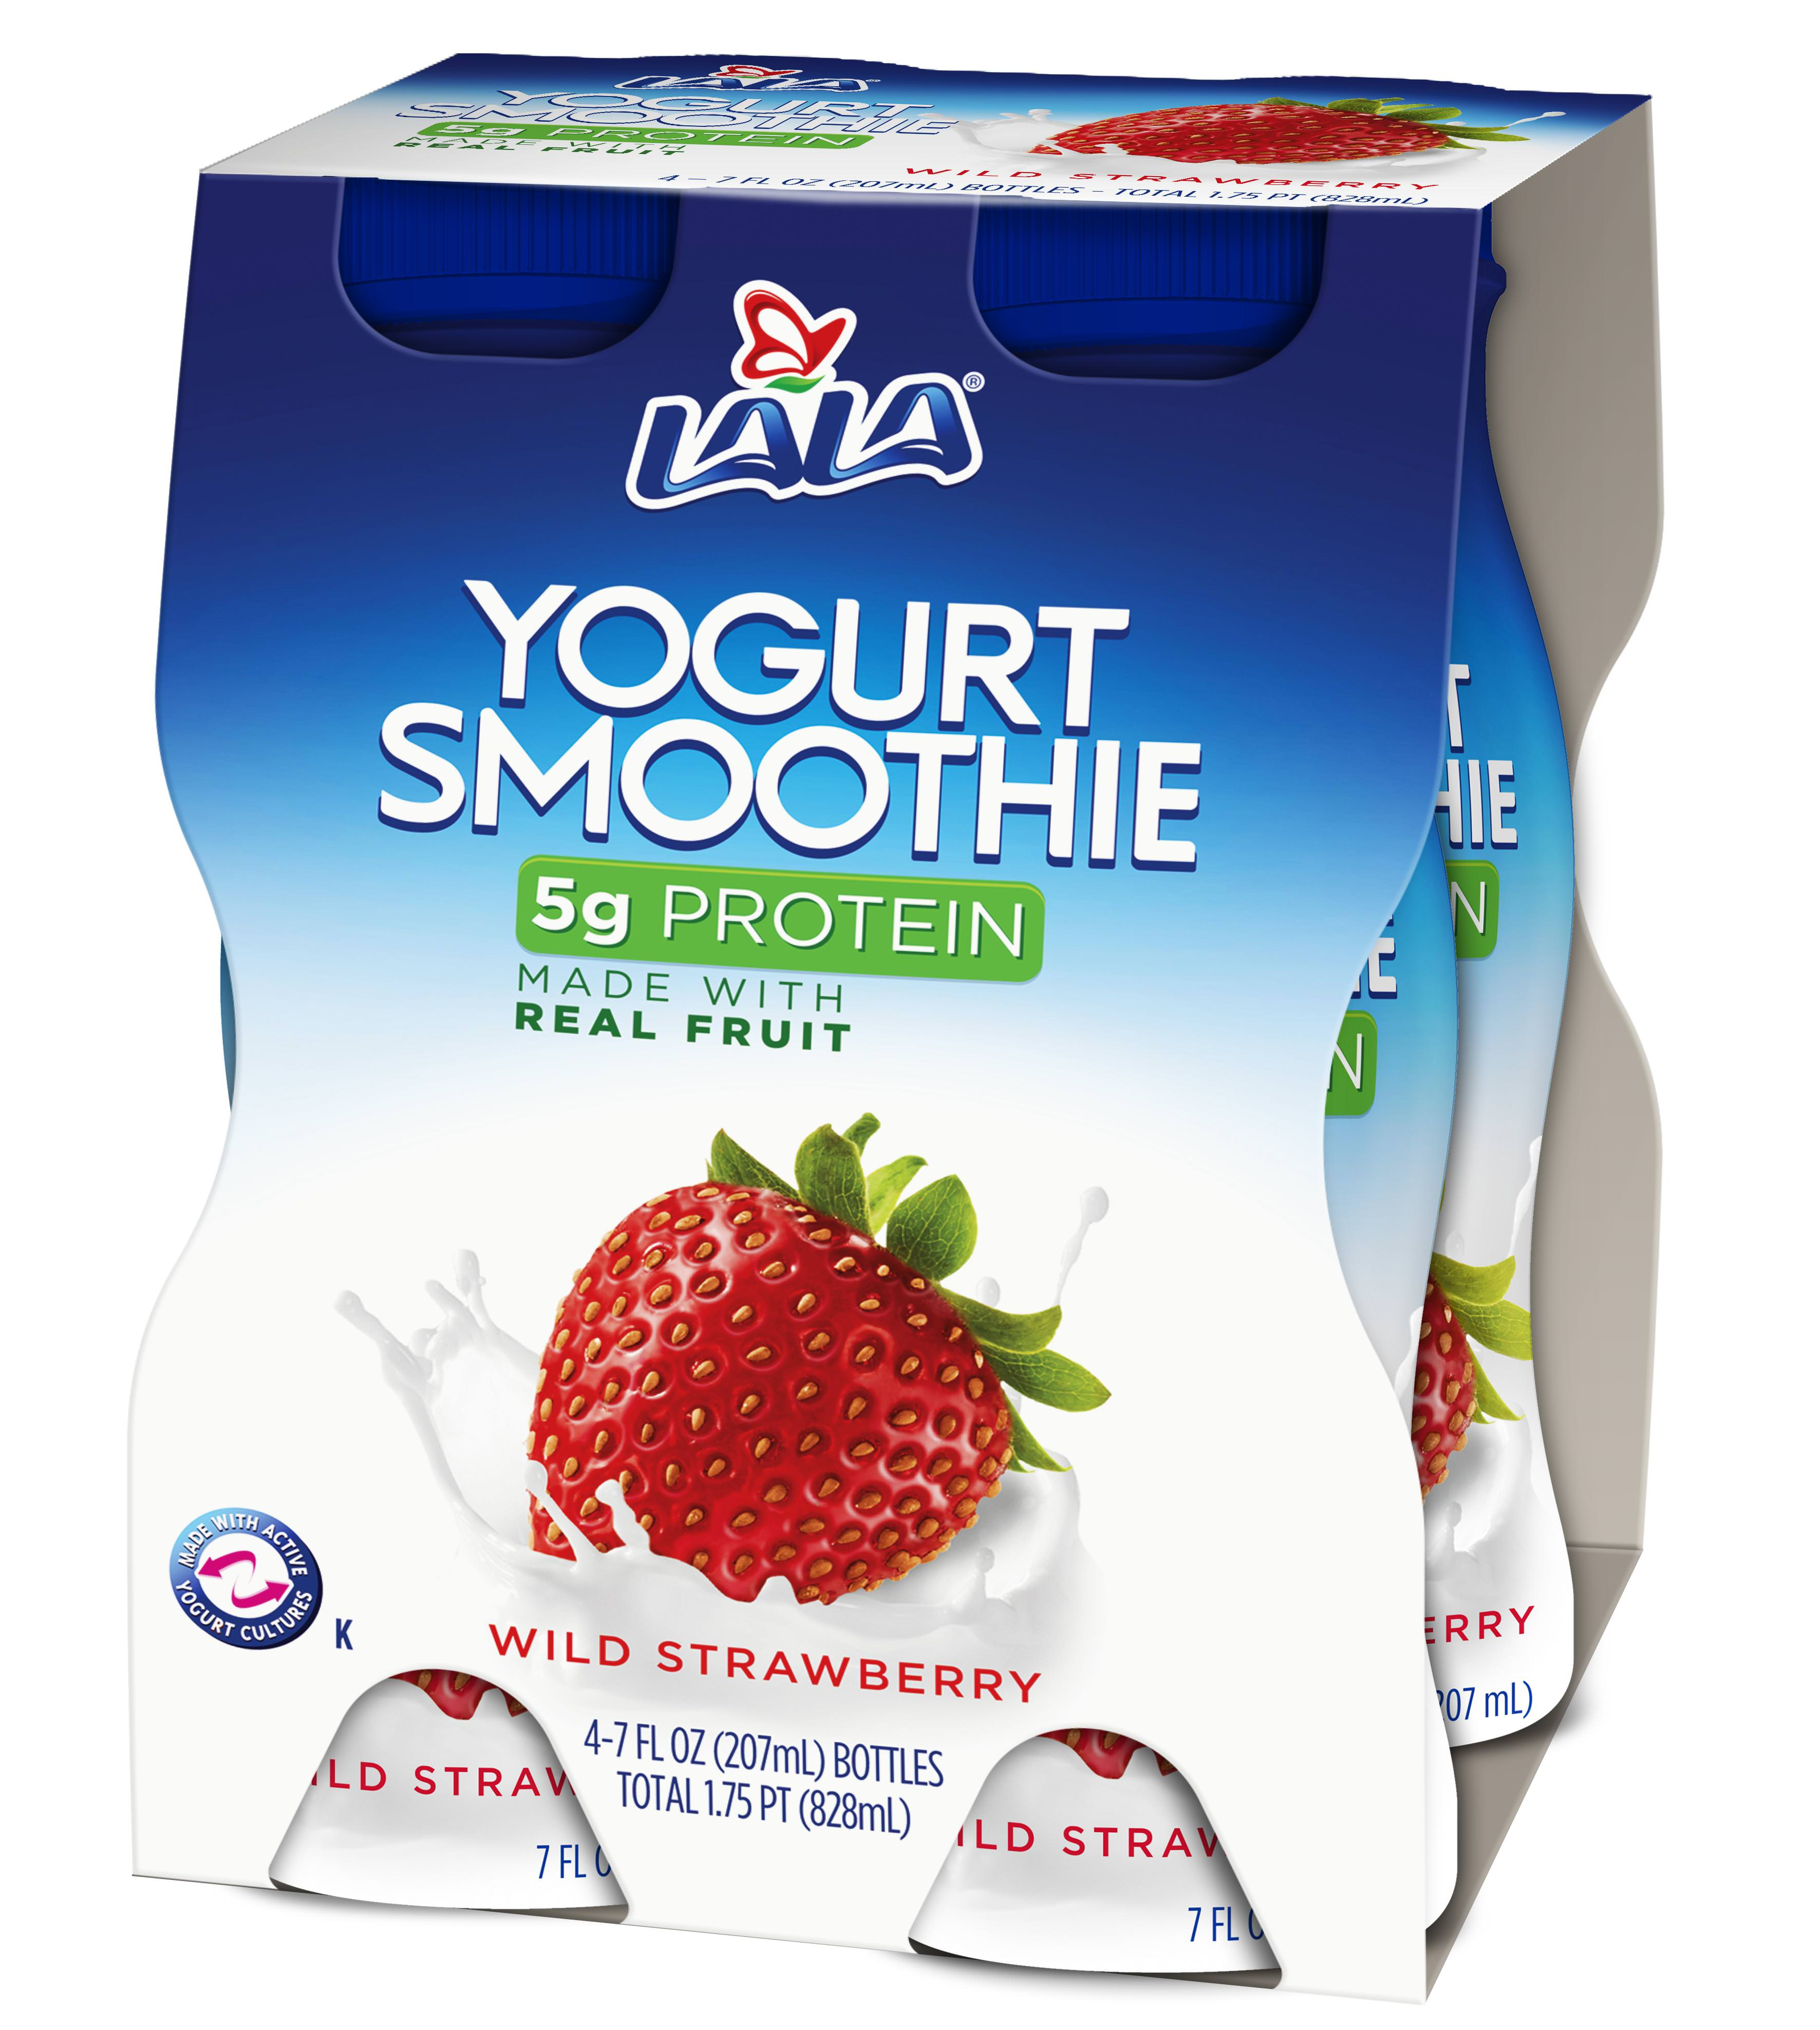 LALA Drinkable Yogurt, Wild Strawberry, 7-oz, 4 Count